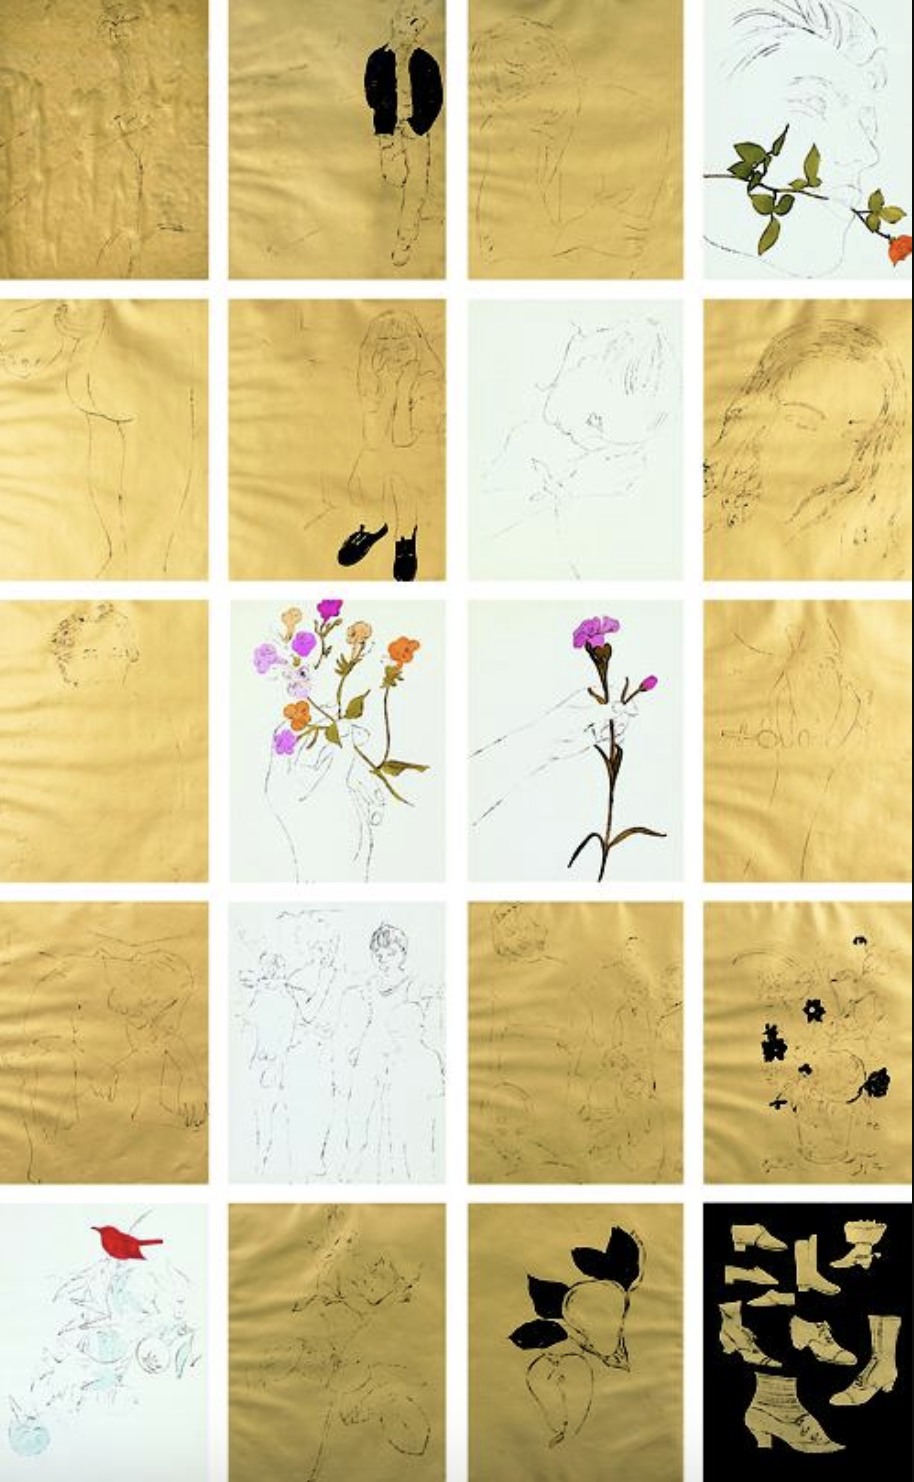 A Gold Book by Andy Warhol